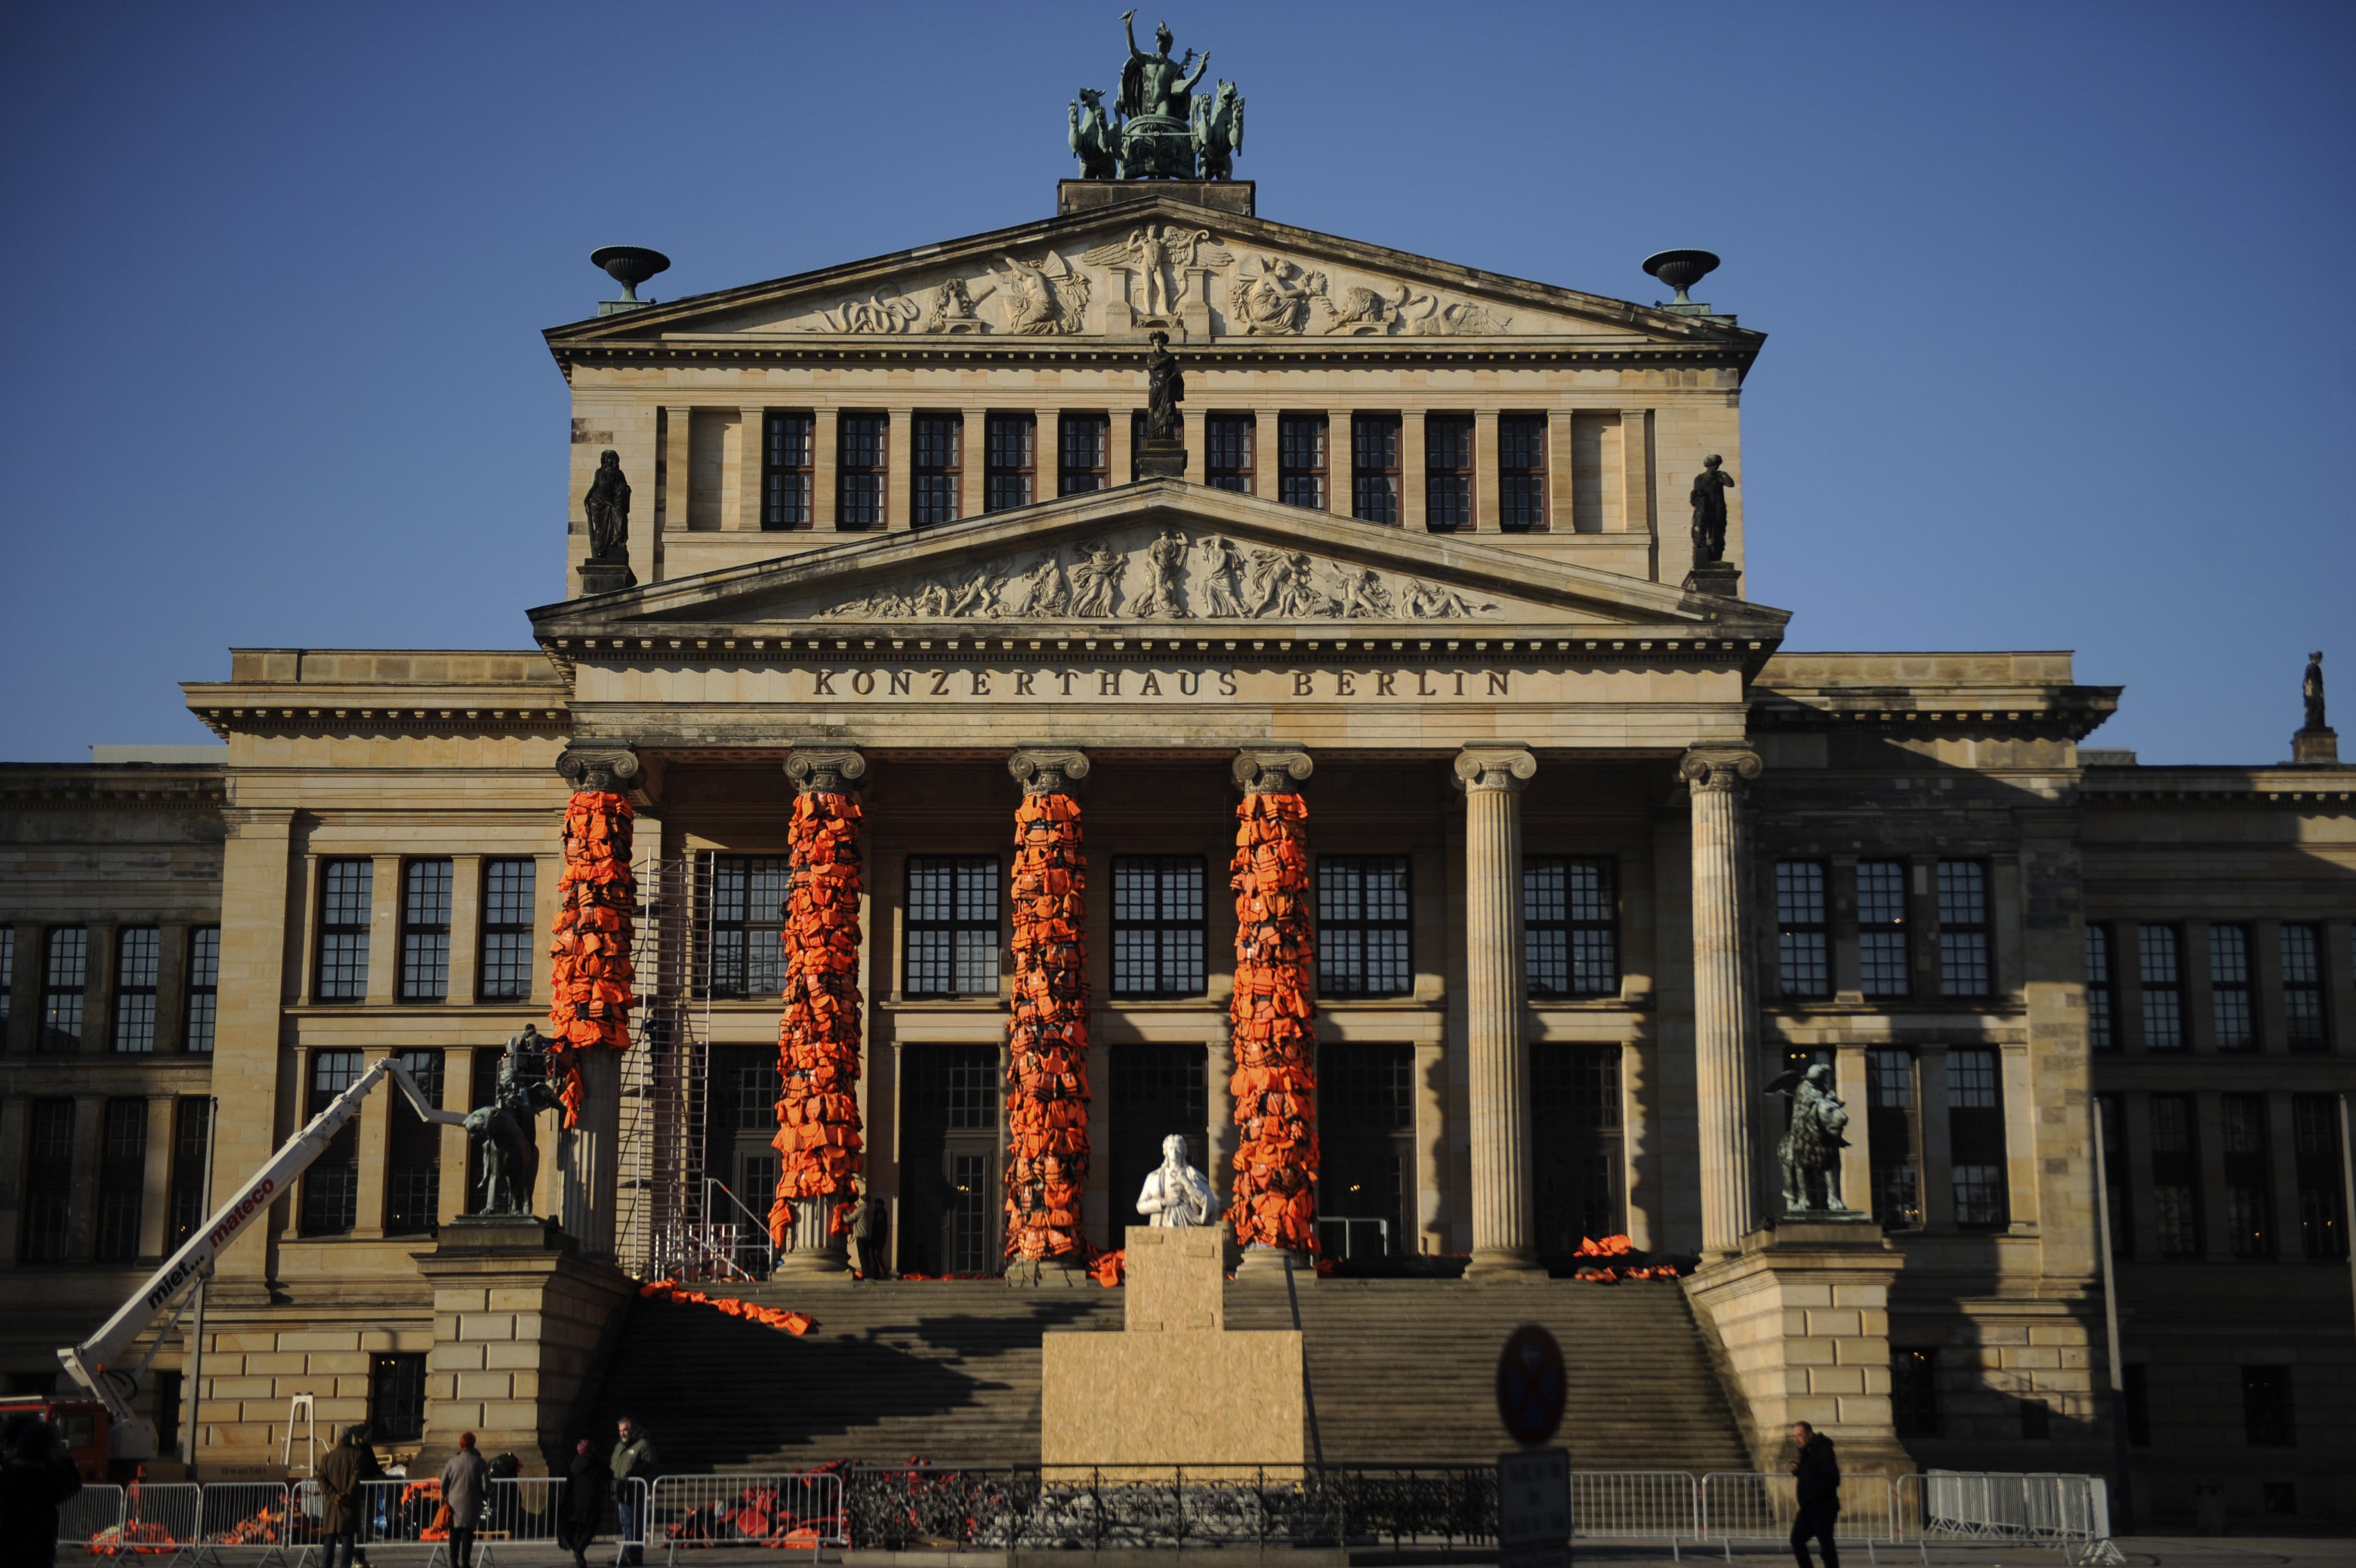 Workers bulid up an instalation by Chinese artist and free-speech advocate Ai Weiwei with life jackets left by migrants on Greek beaches on columns at the Schauspielhaus concert hall during the 66th Berlinale International Film Festival in Berlin, Germany February 13, 2016. Ai Weiwei used about 14,000 discarded life jackets, which he obtained from authorities from the Greek island of Lesbos for this memorial project.  REUTERS/Stefanie Loos FOR EDITORIAL USE ONLY. NOT FOR SALE FOR MARKETING OR ADVERTISING CAMPAIGNS.   - RTX26QMV